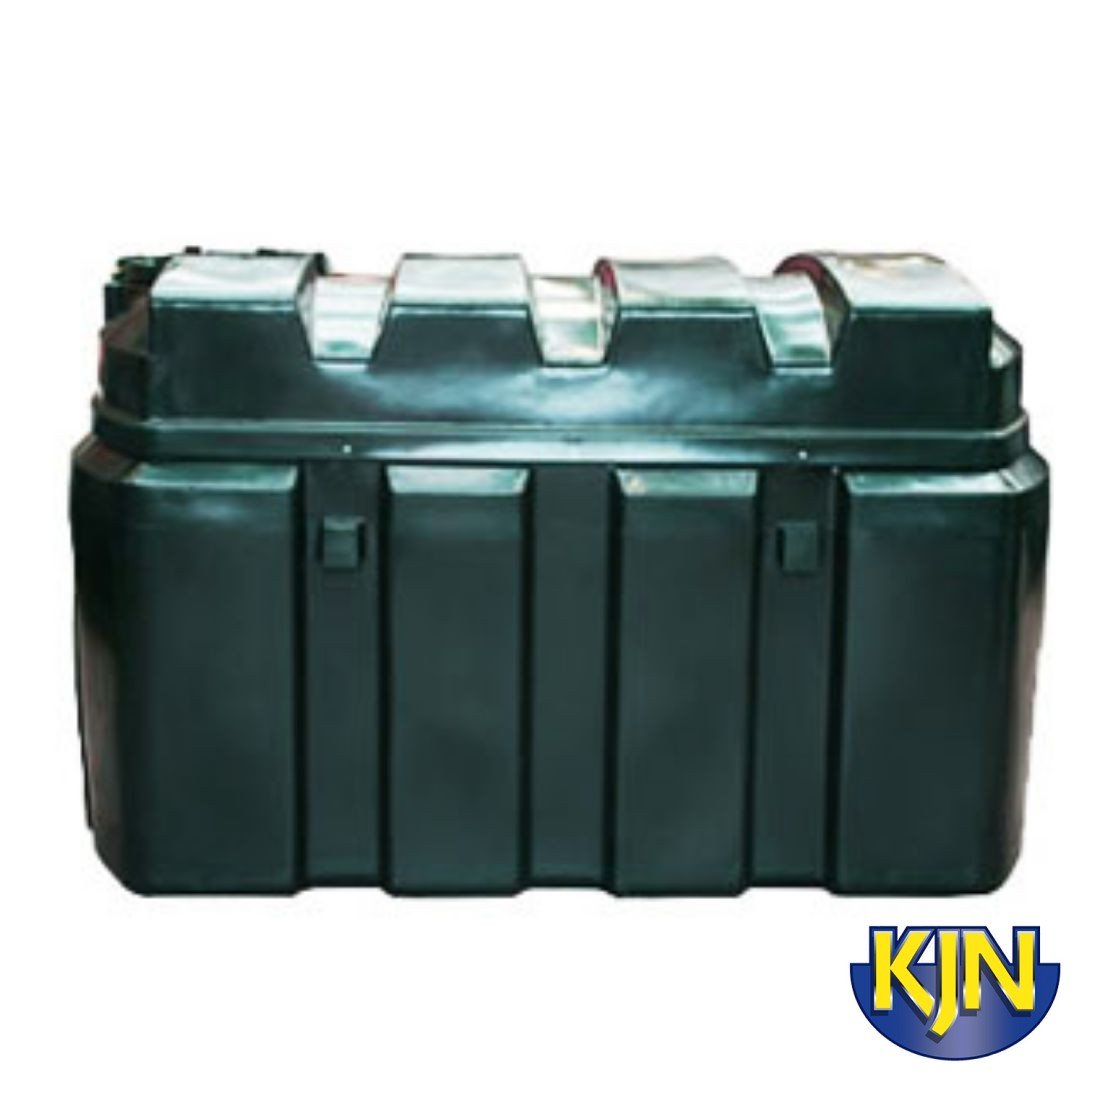 Titan Ecosafe Bunded Oil Tank 2500 Litre Bottom Or Top Outlet